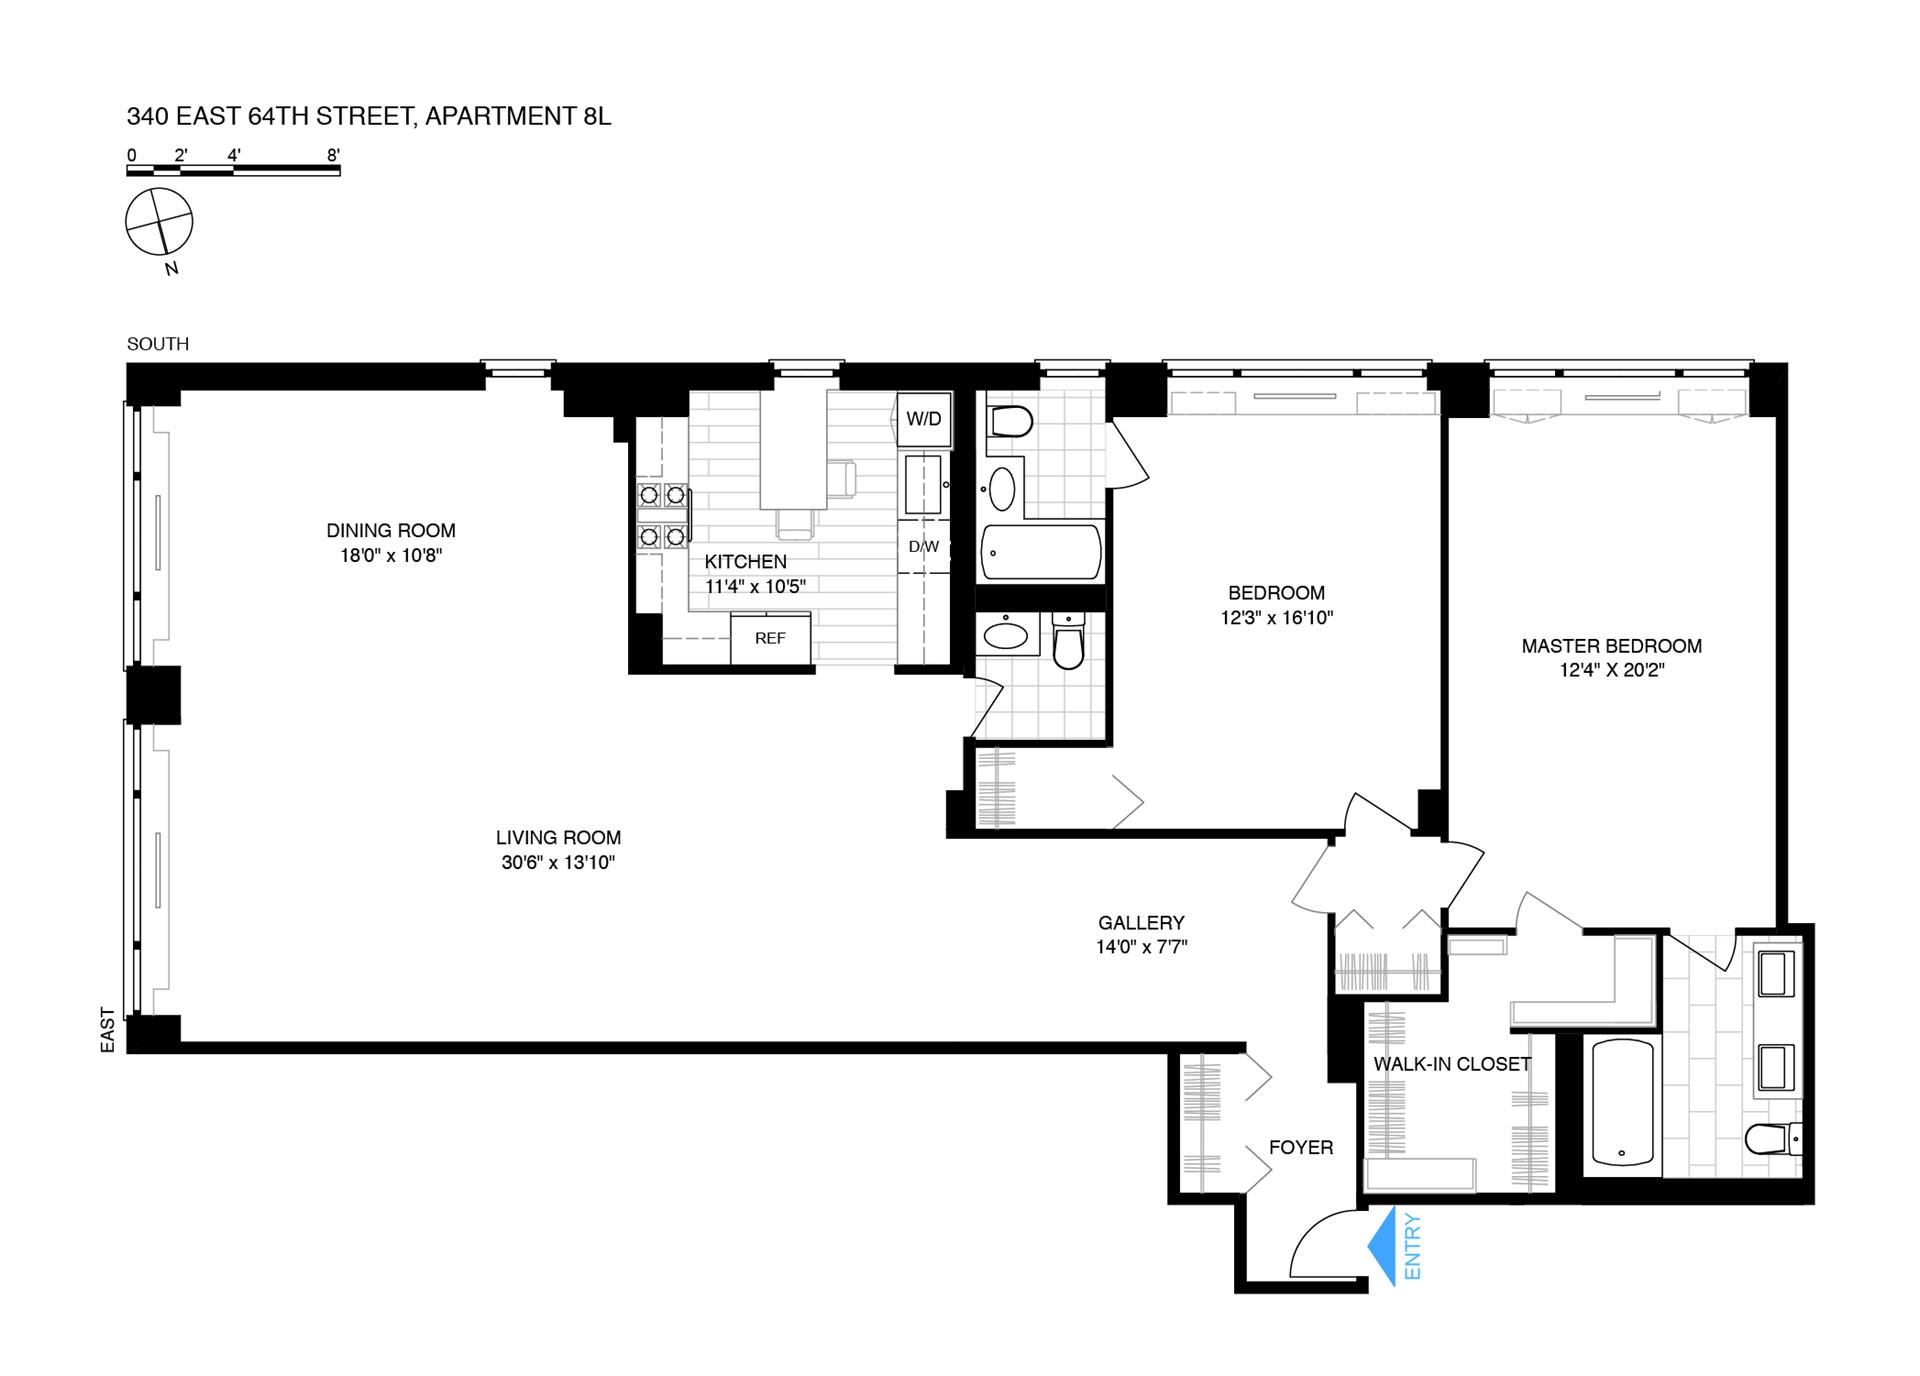 Floor plan of St. Tropez, 340 East 64th St, 8L - Upper East Side, New York